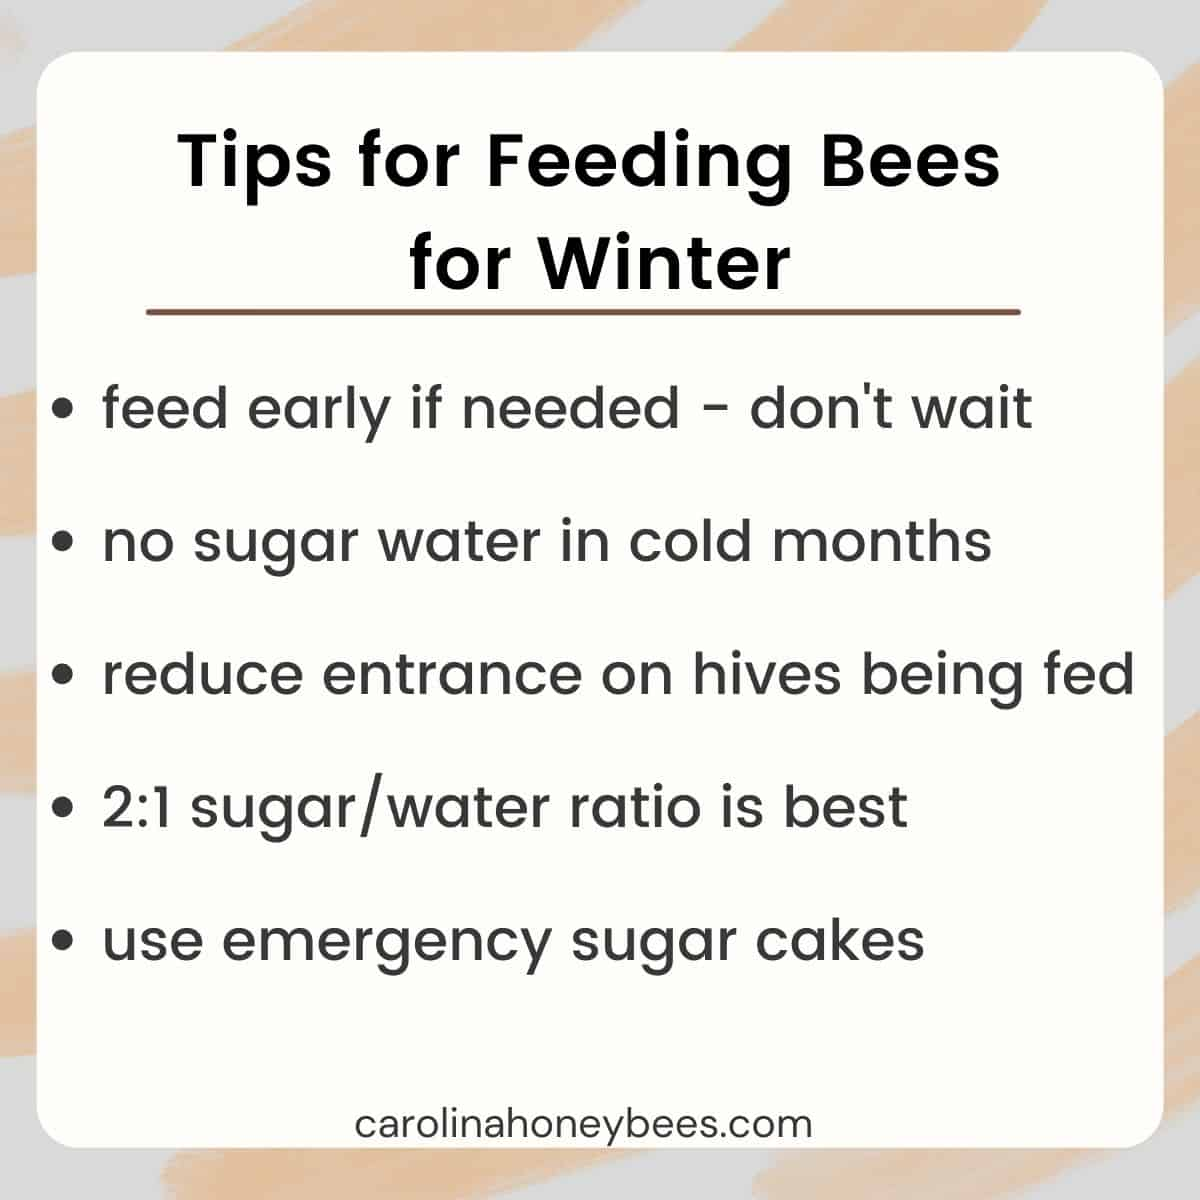 Diagram tips for feeding bees for winter image.